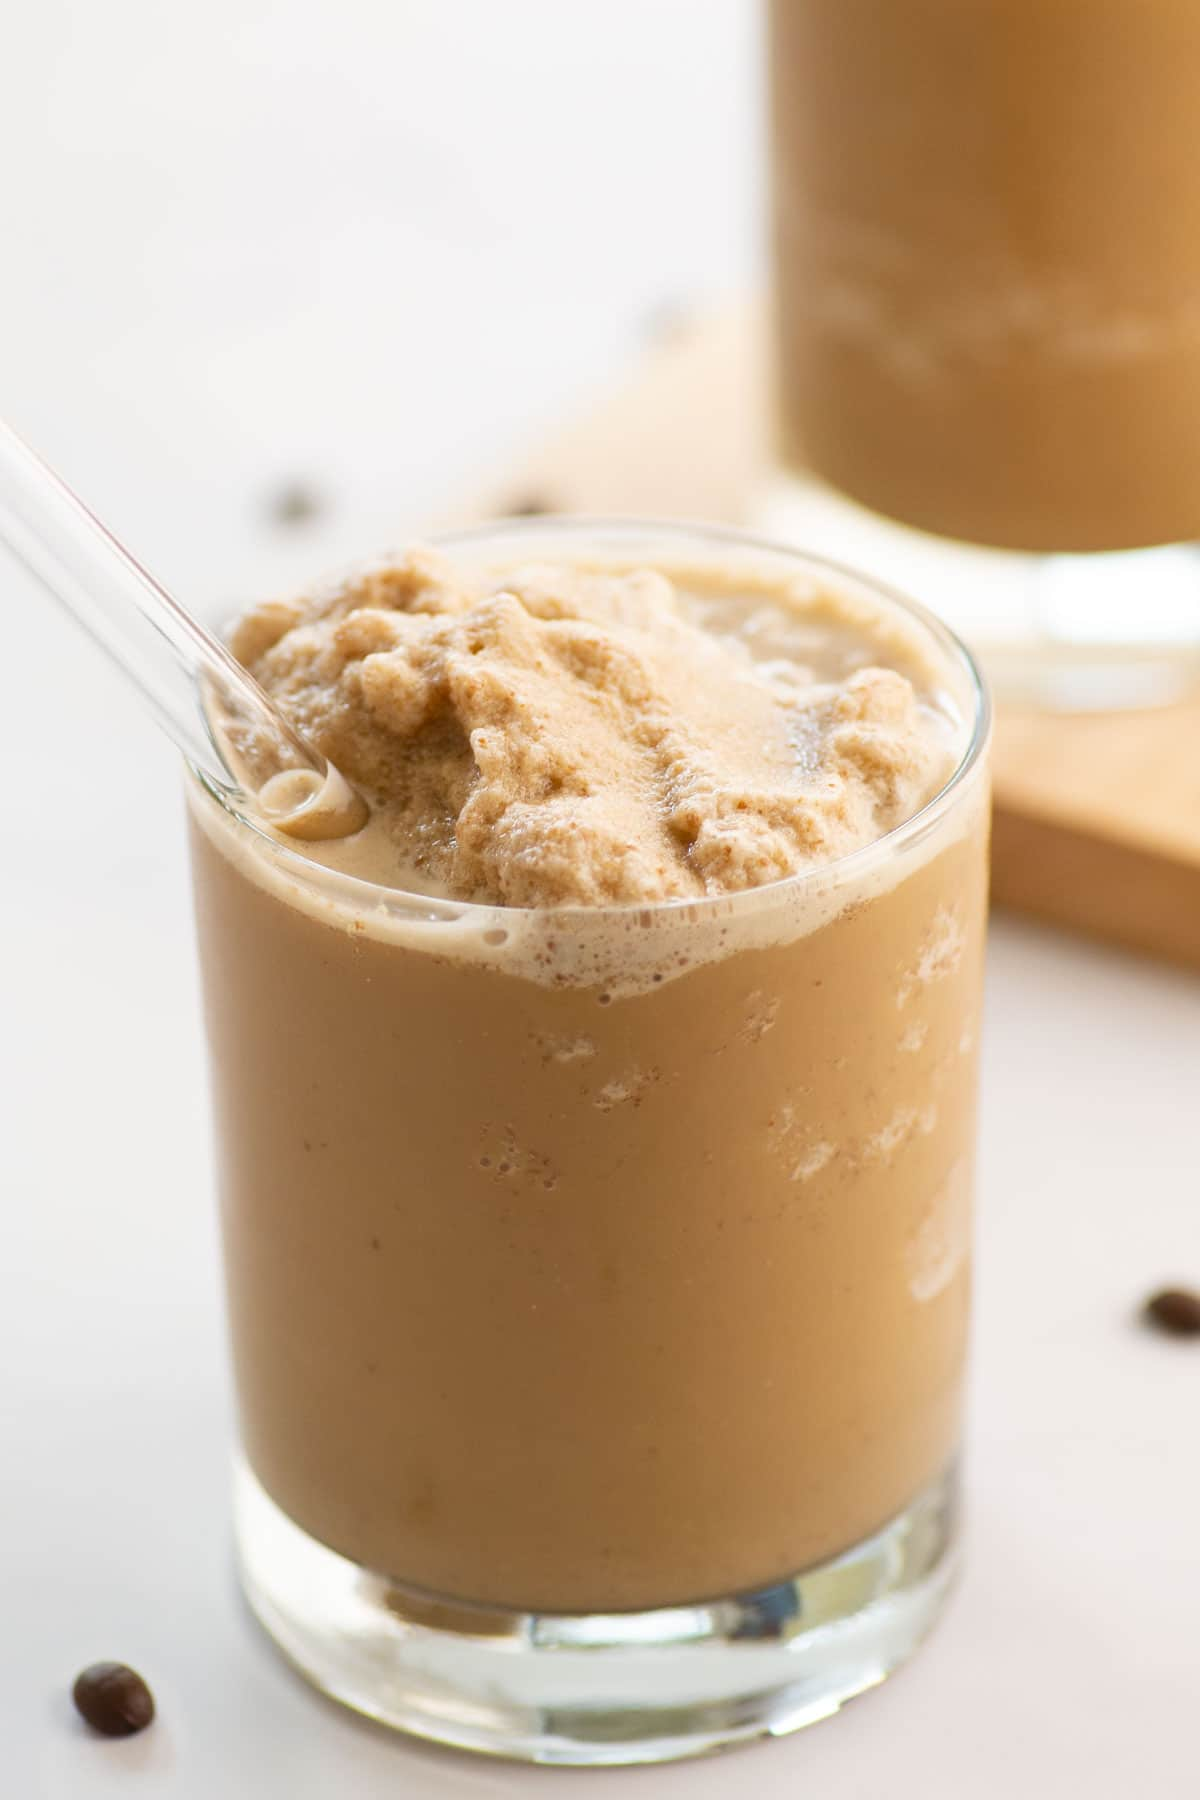 blended coffee smoothie with glass straw